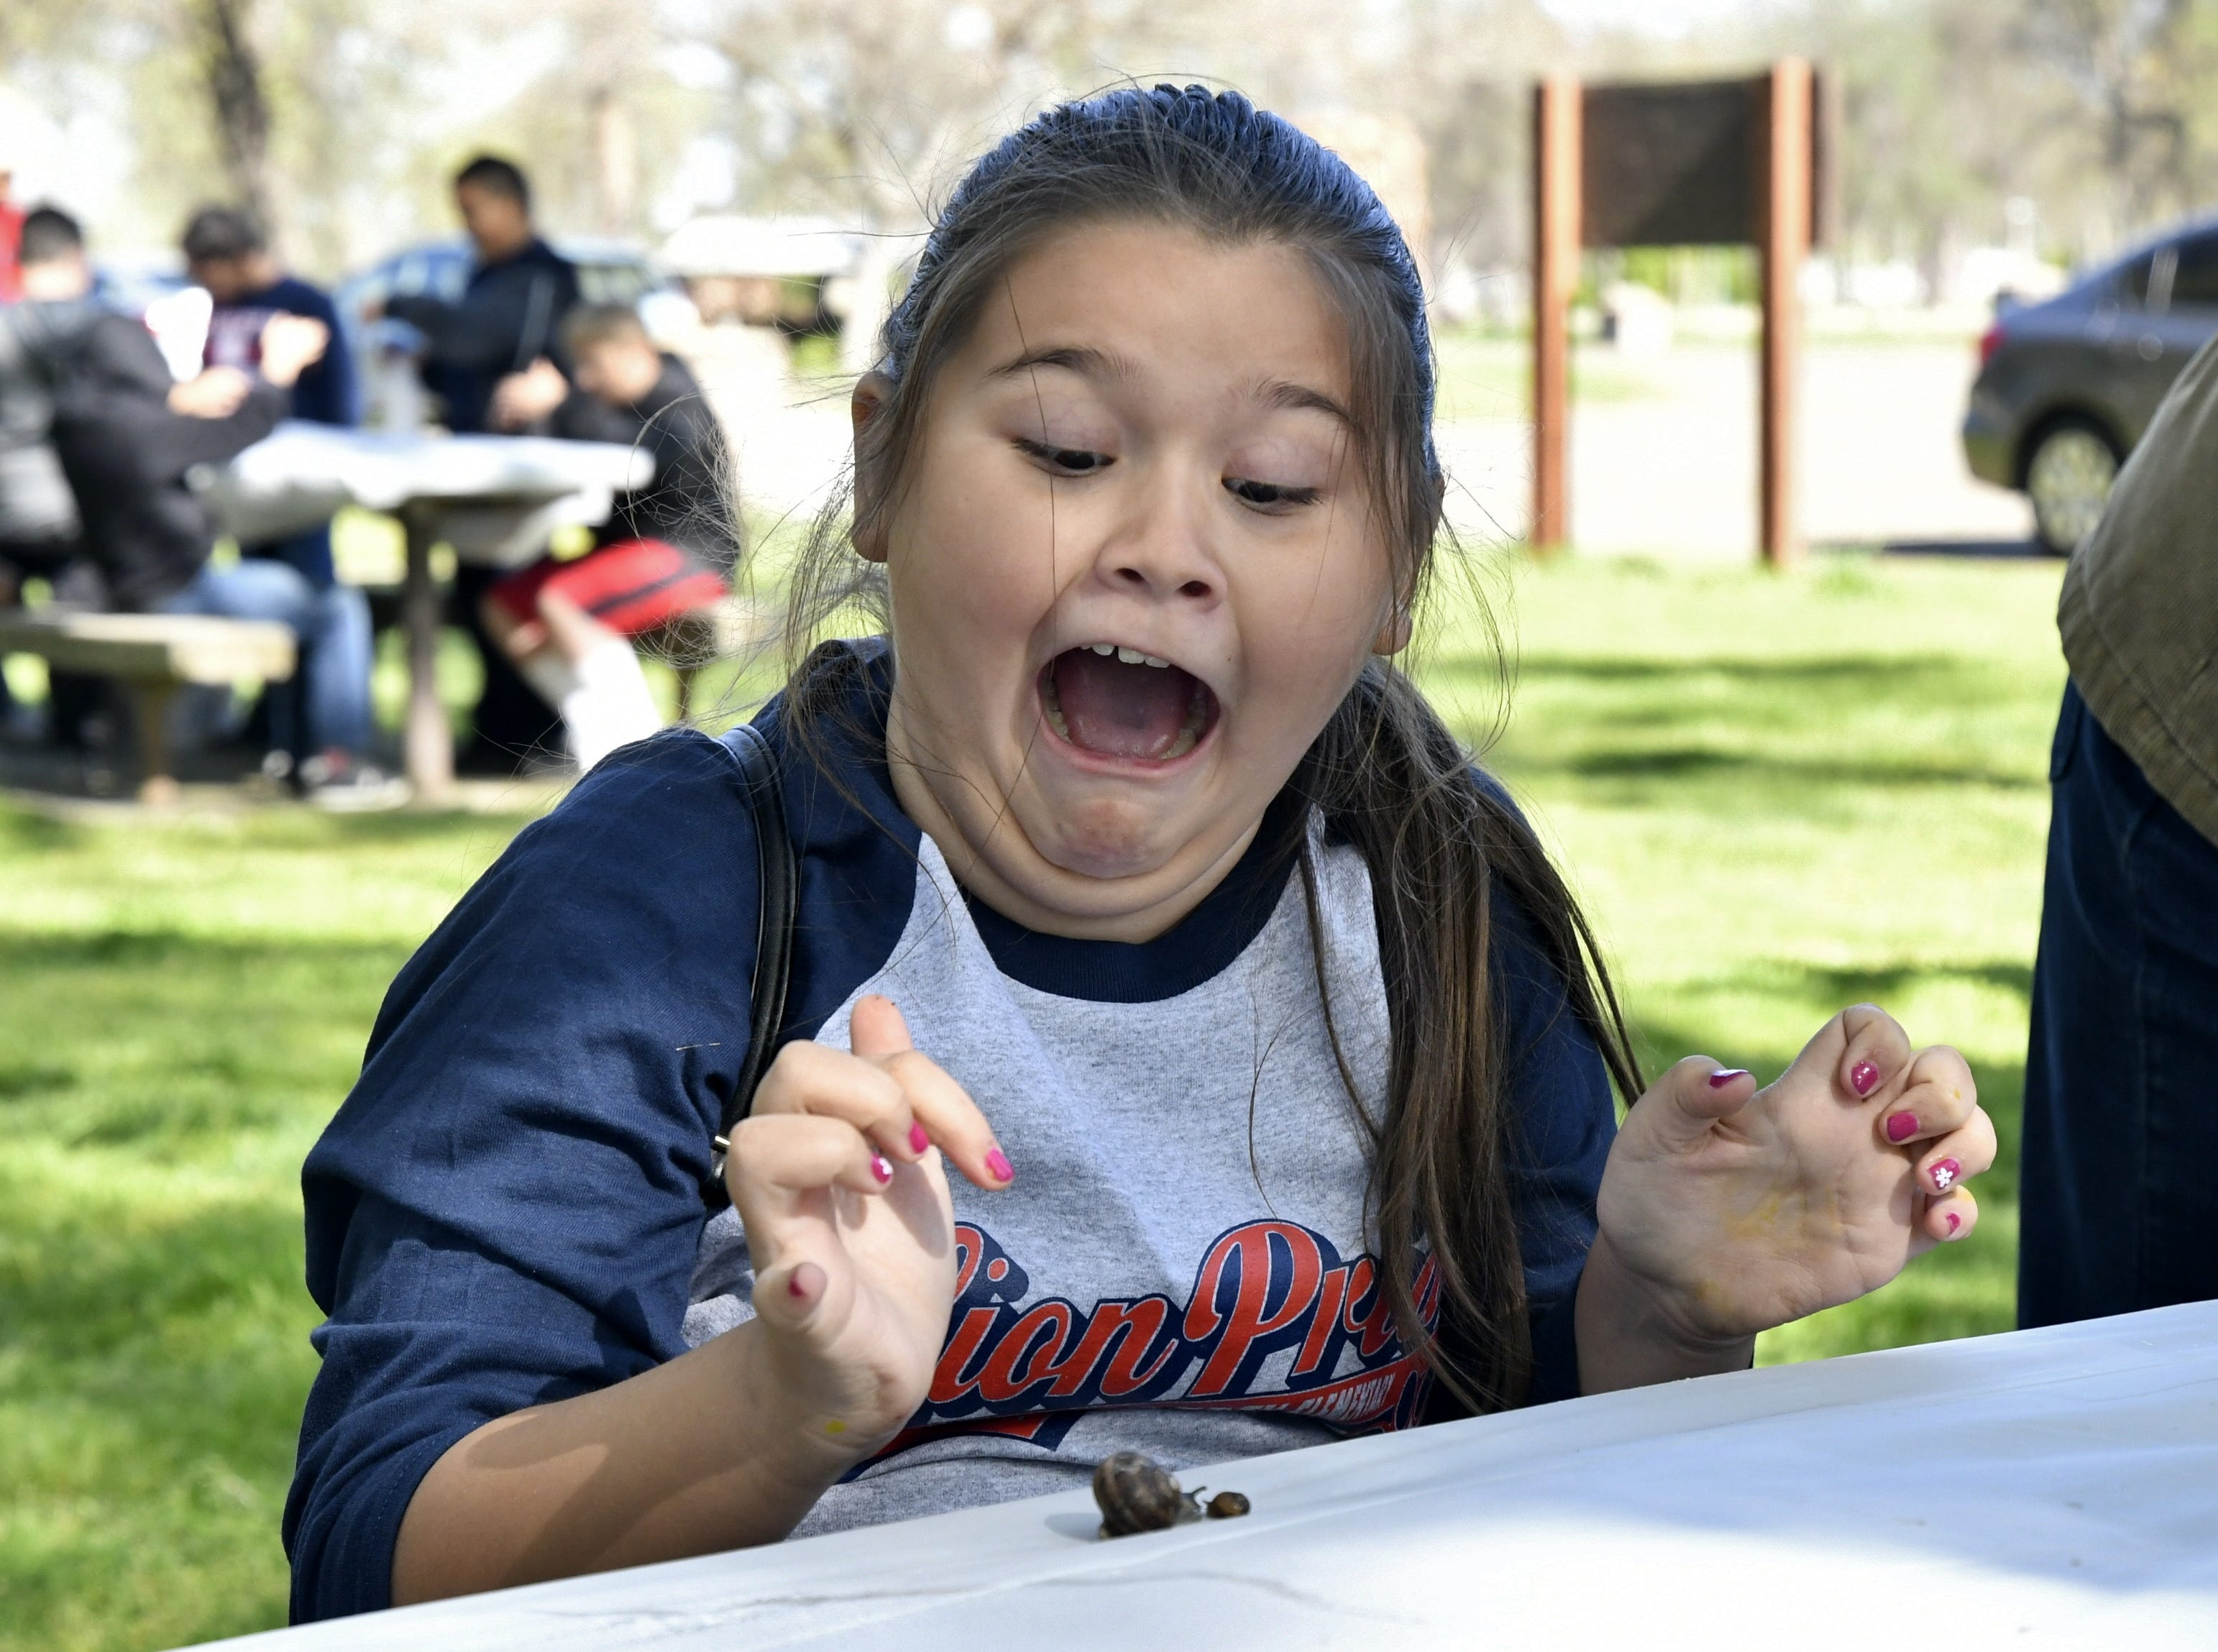 Liberty Elementary fourth grader Chloe Porter, 10, reacts to seeing a snail at TCOE's Arbor Day event at Mooney Grove Park on Thursday, March 28, 2019.